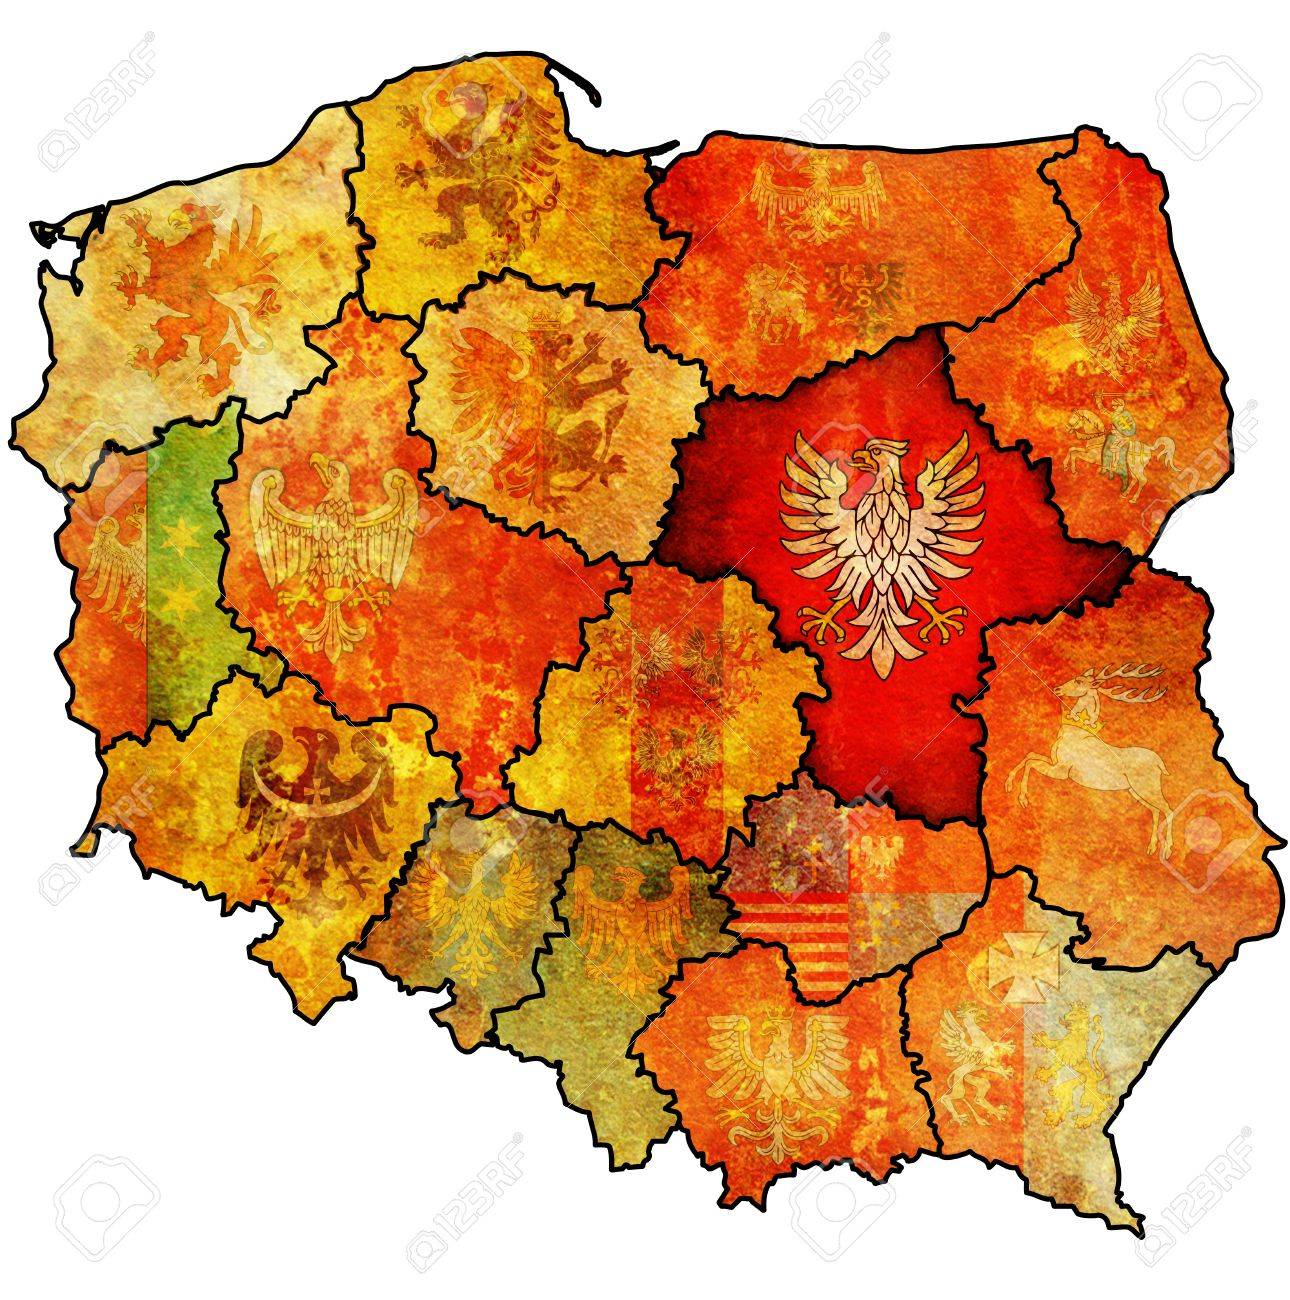 Masovian Region On Administration Map Of Poland With Flags Of